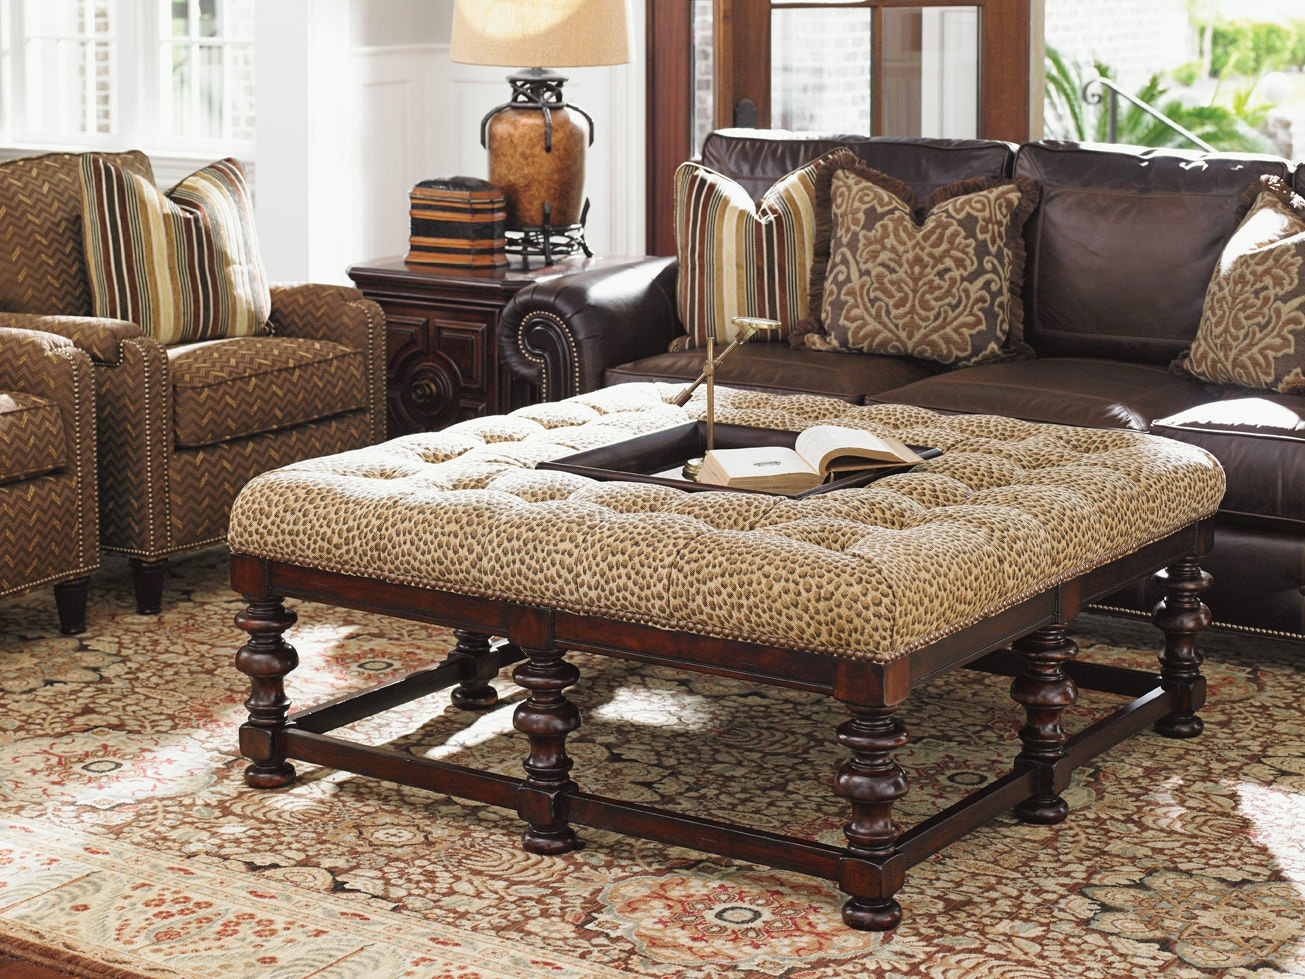 tommy bahama living room 5th wheel rv front home heather cocktail ottoman 7900 44